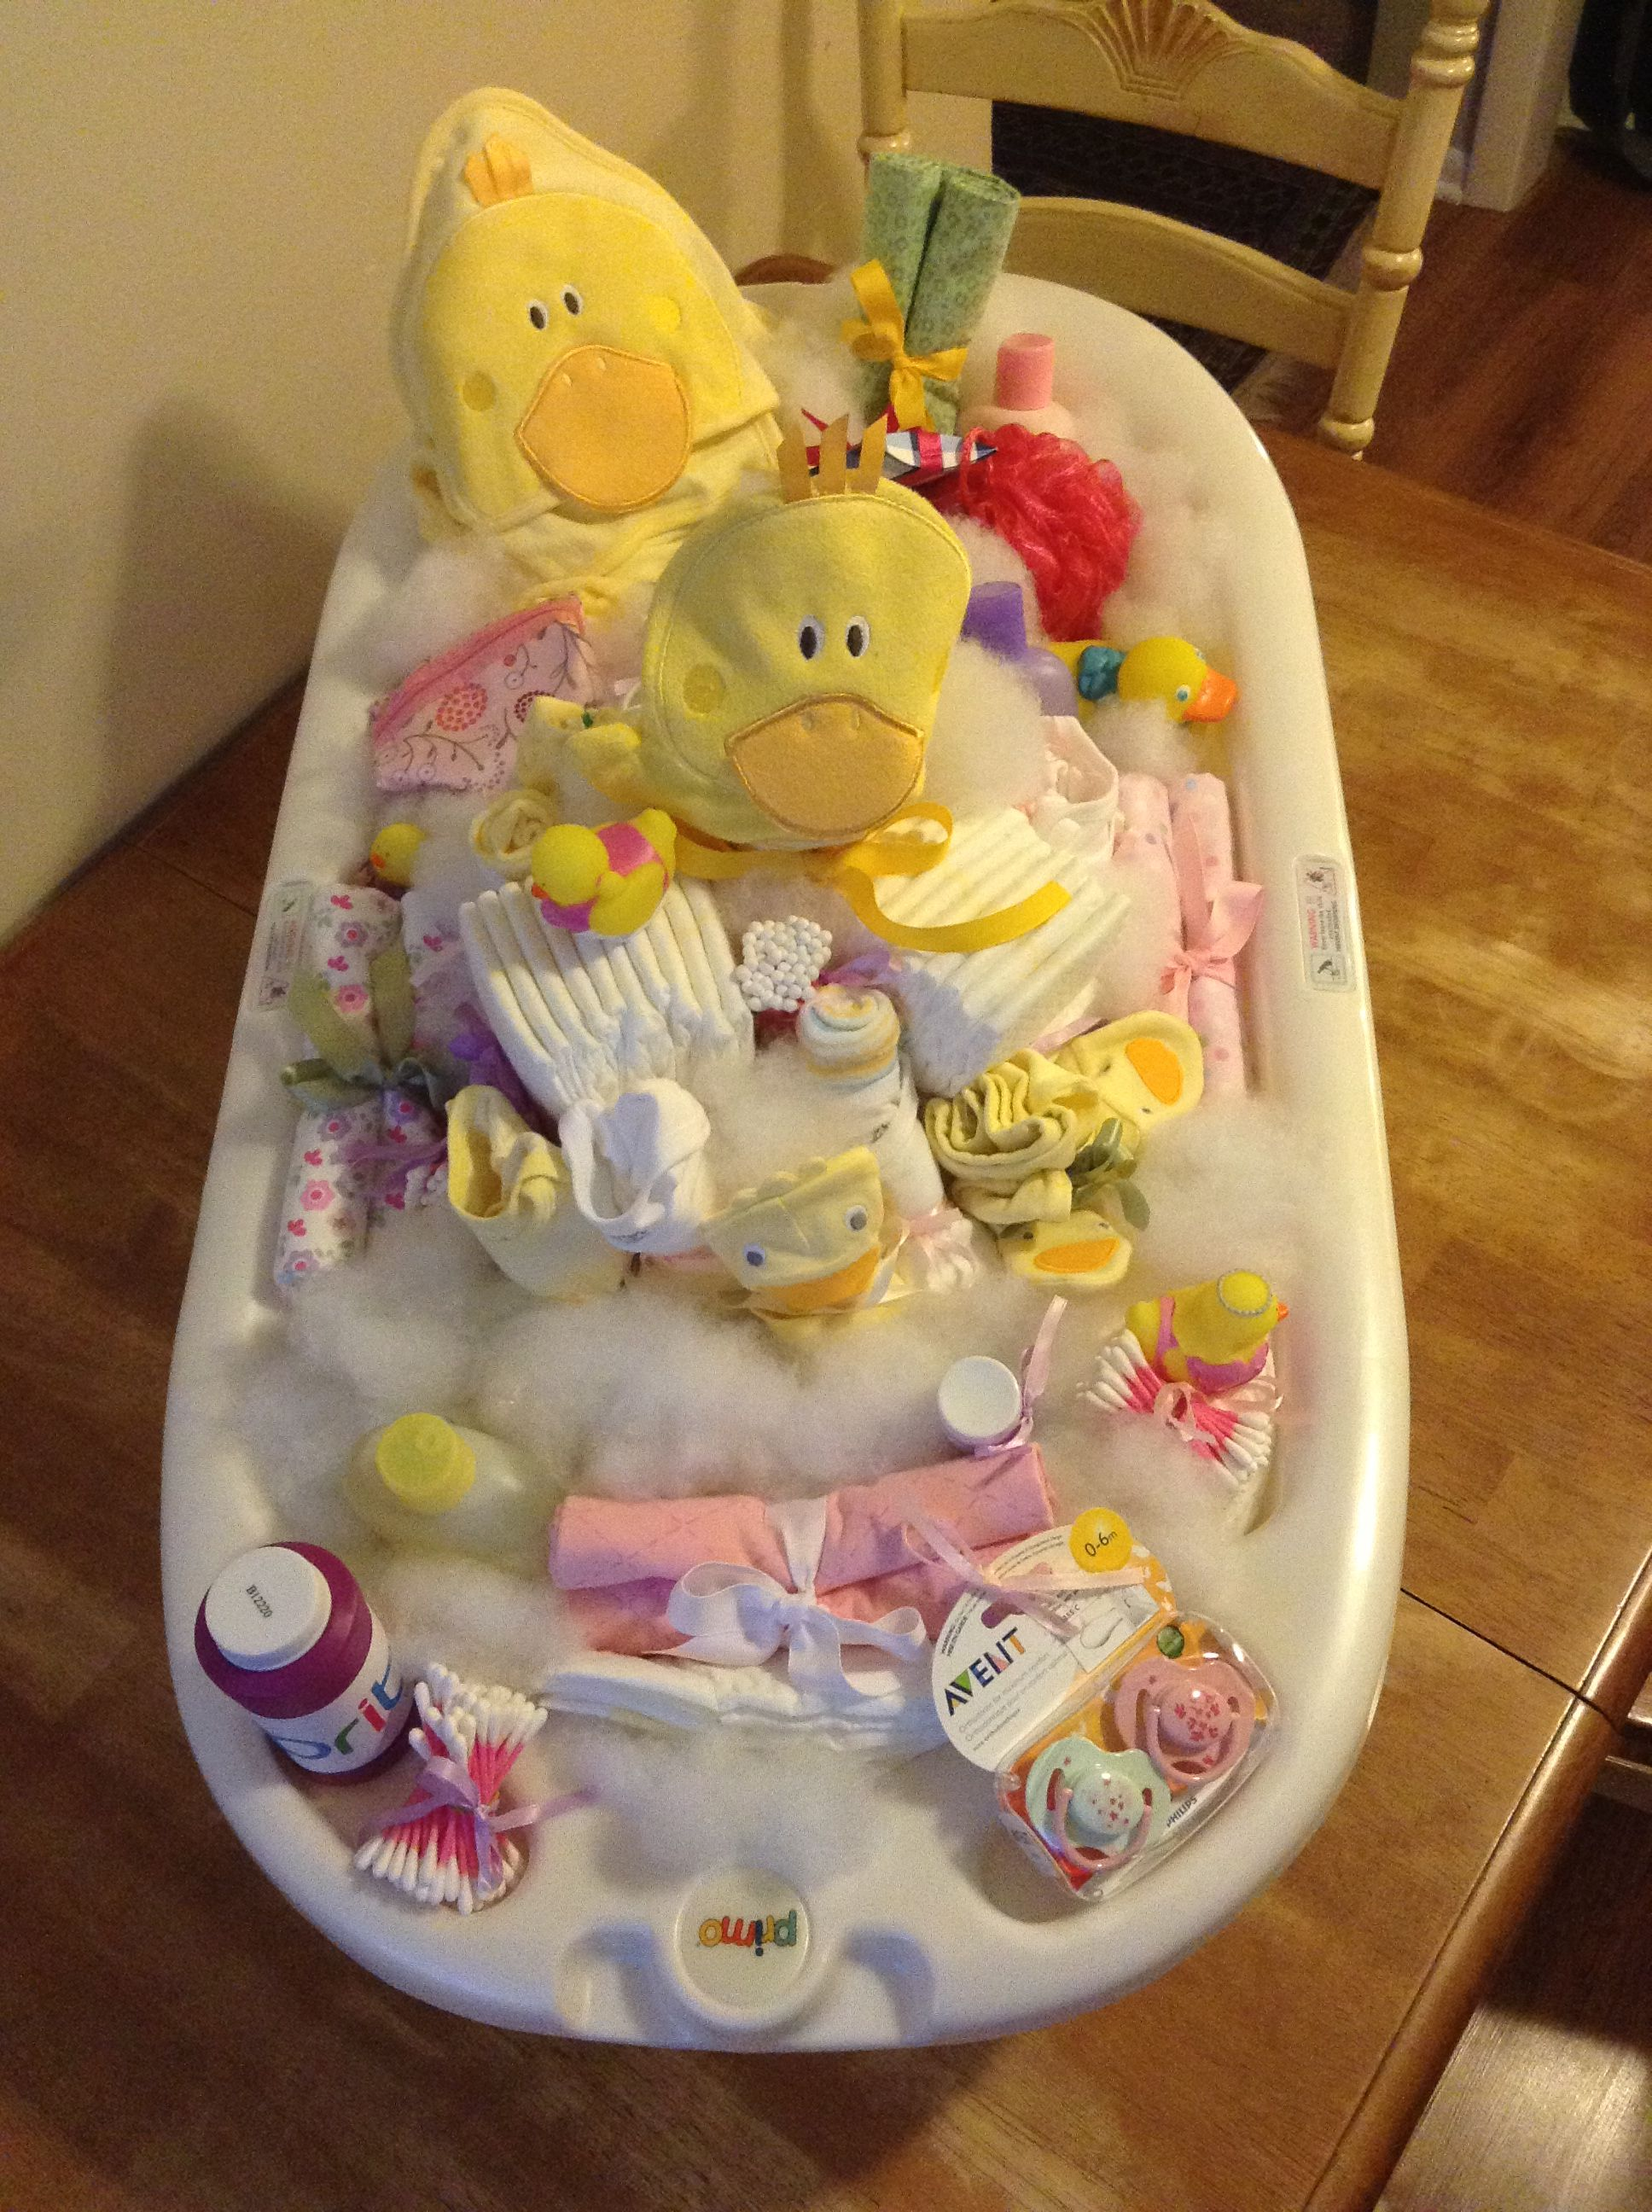 Sweet baby shower gift the base of the tub is filled with diapers diy baby shower gift ideas for those on a budget diy baby gifts baby shower gifts cheap baby shower gifts diy baby shower gift for girls and for boys negle Images